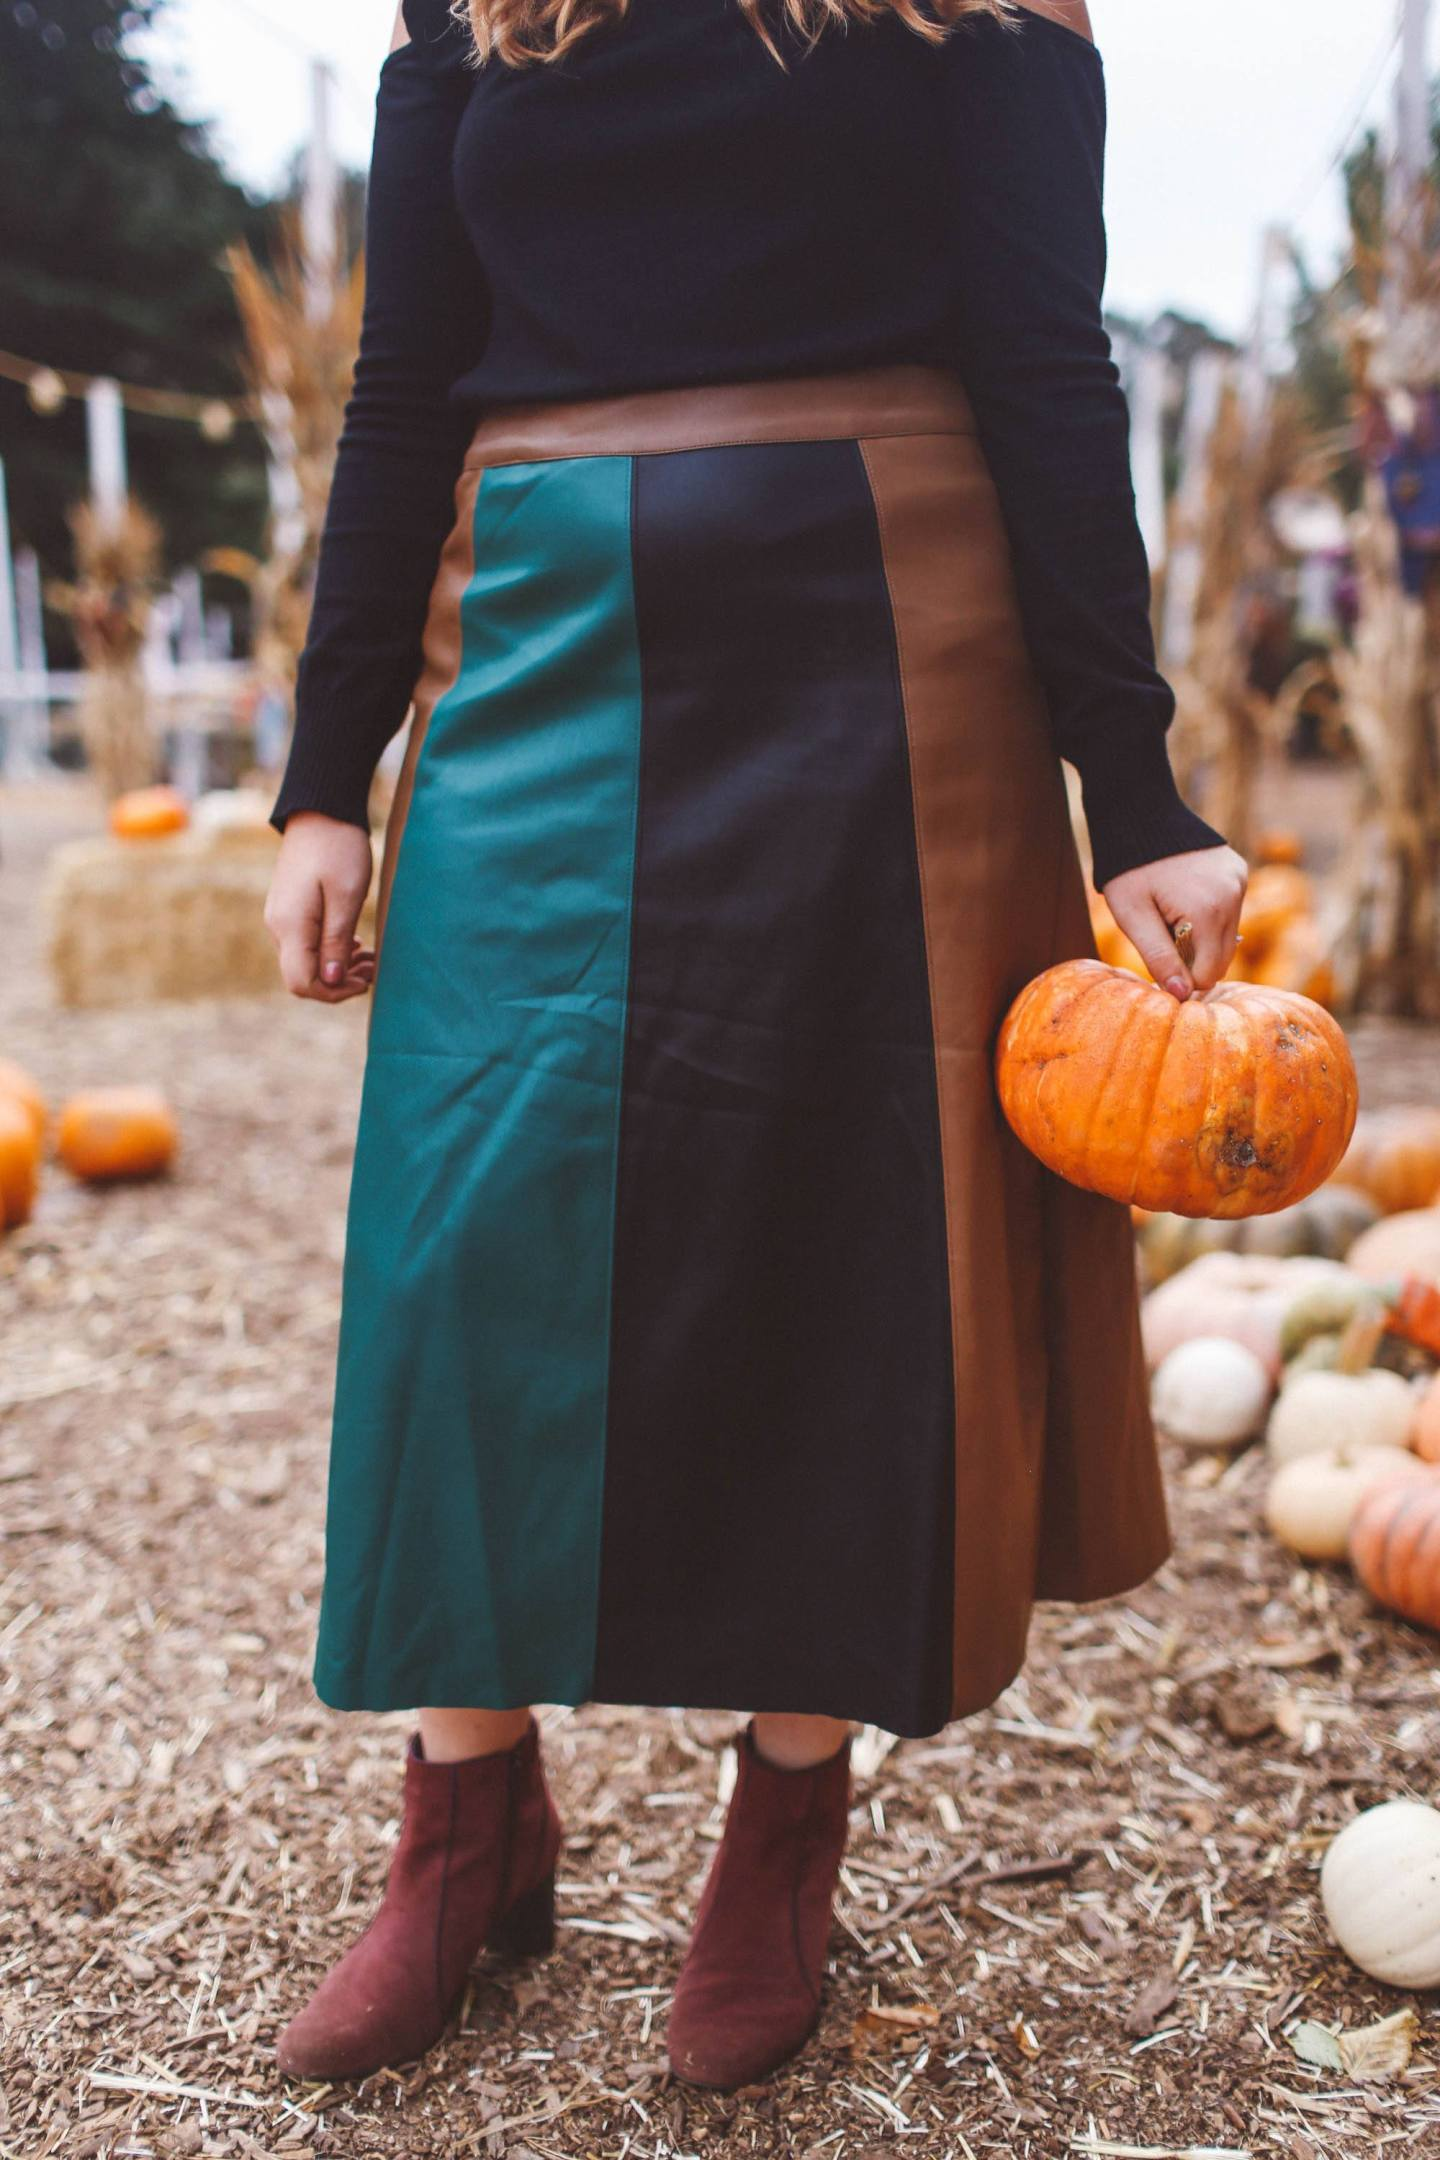 Panel skirt pumpkin woman